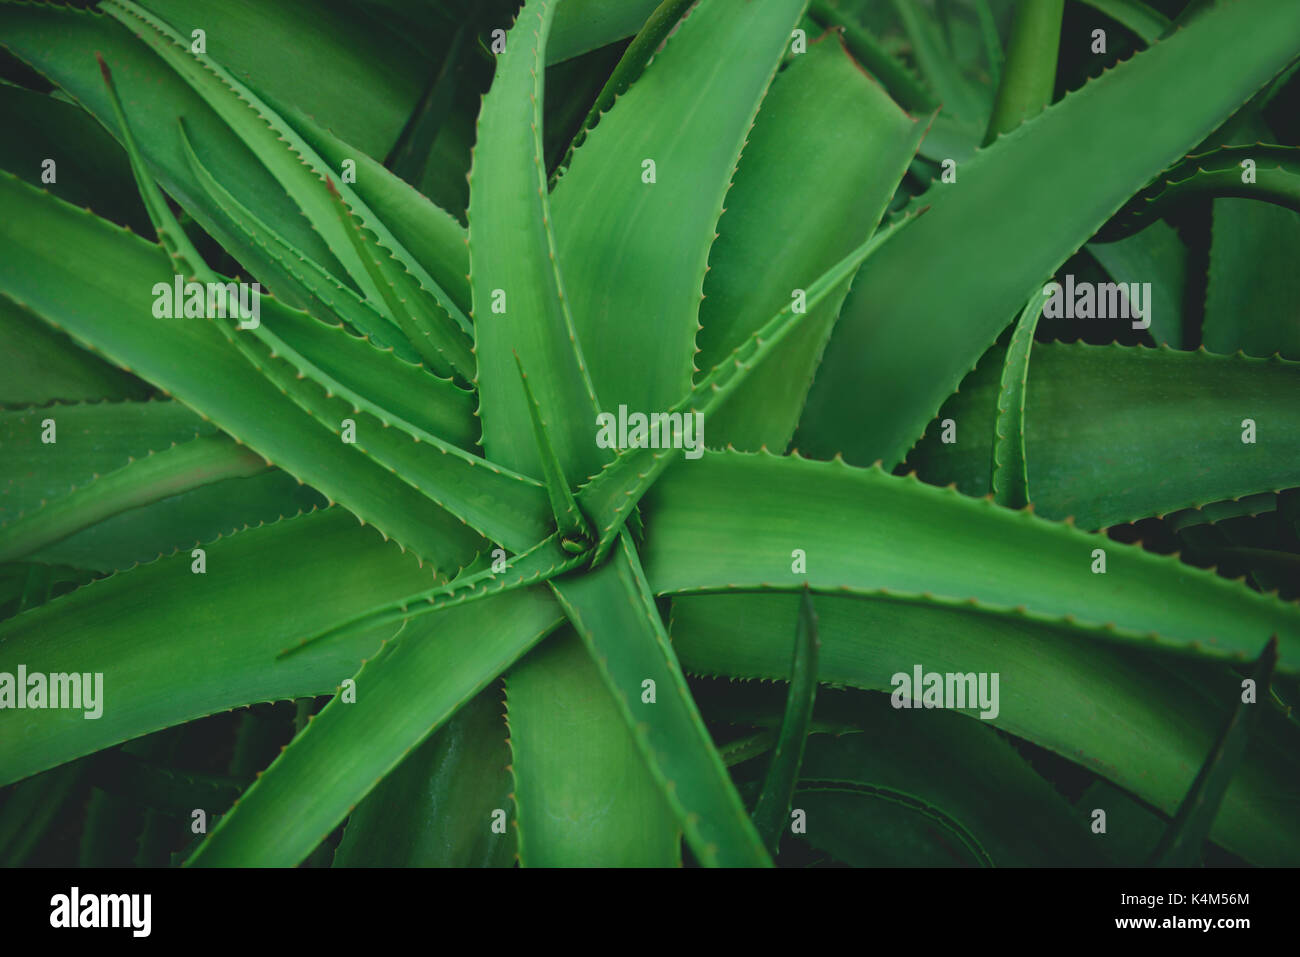 Closeup of leaves of the Aloe Vera plant species. - Stock Image